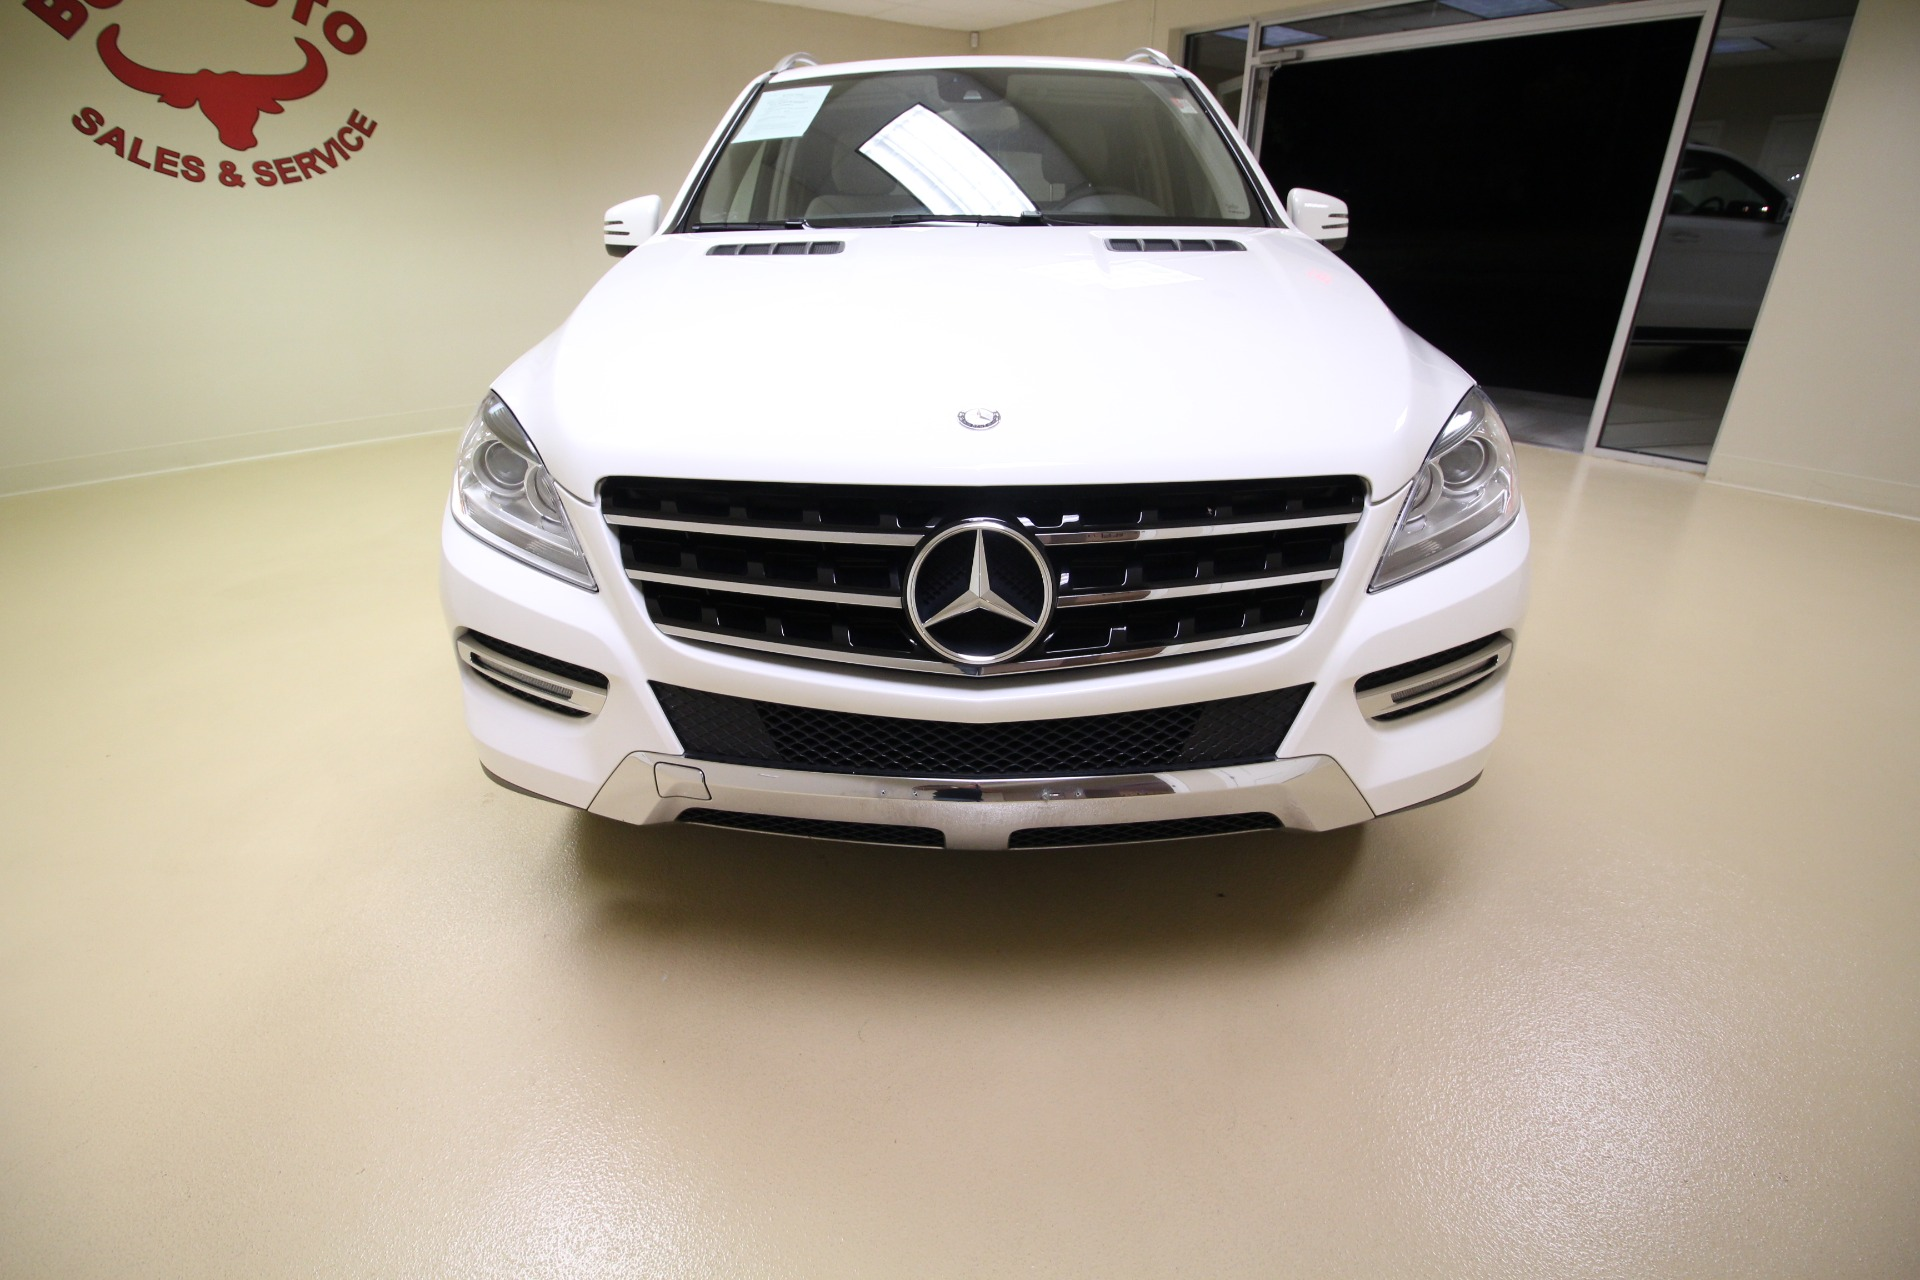 Used 2015 Mercedes-Benz M-Class ML350 4MATIC SUPERB CONDITION LOW MILES GREAT COLORS   Albany, NY